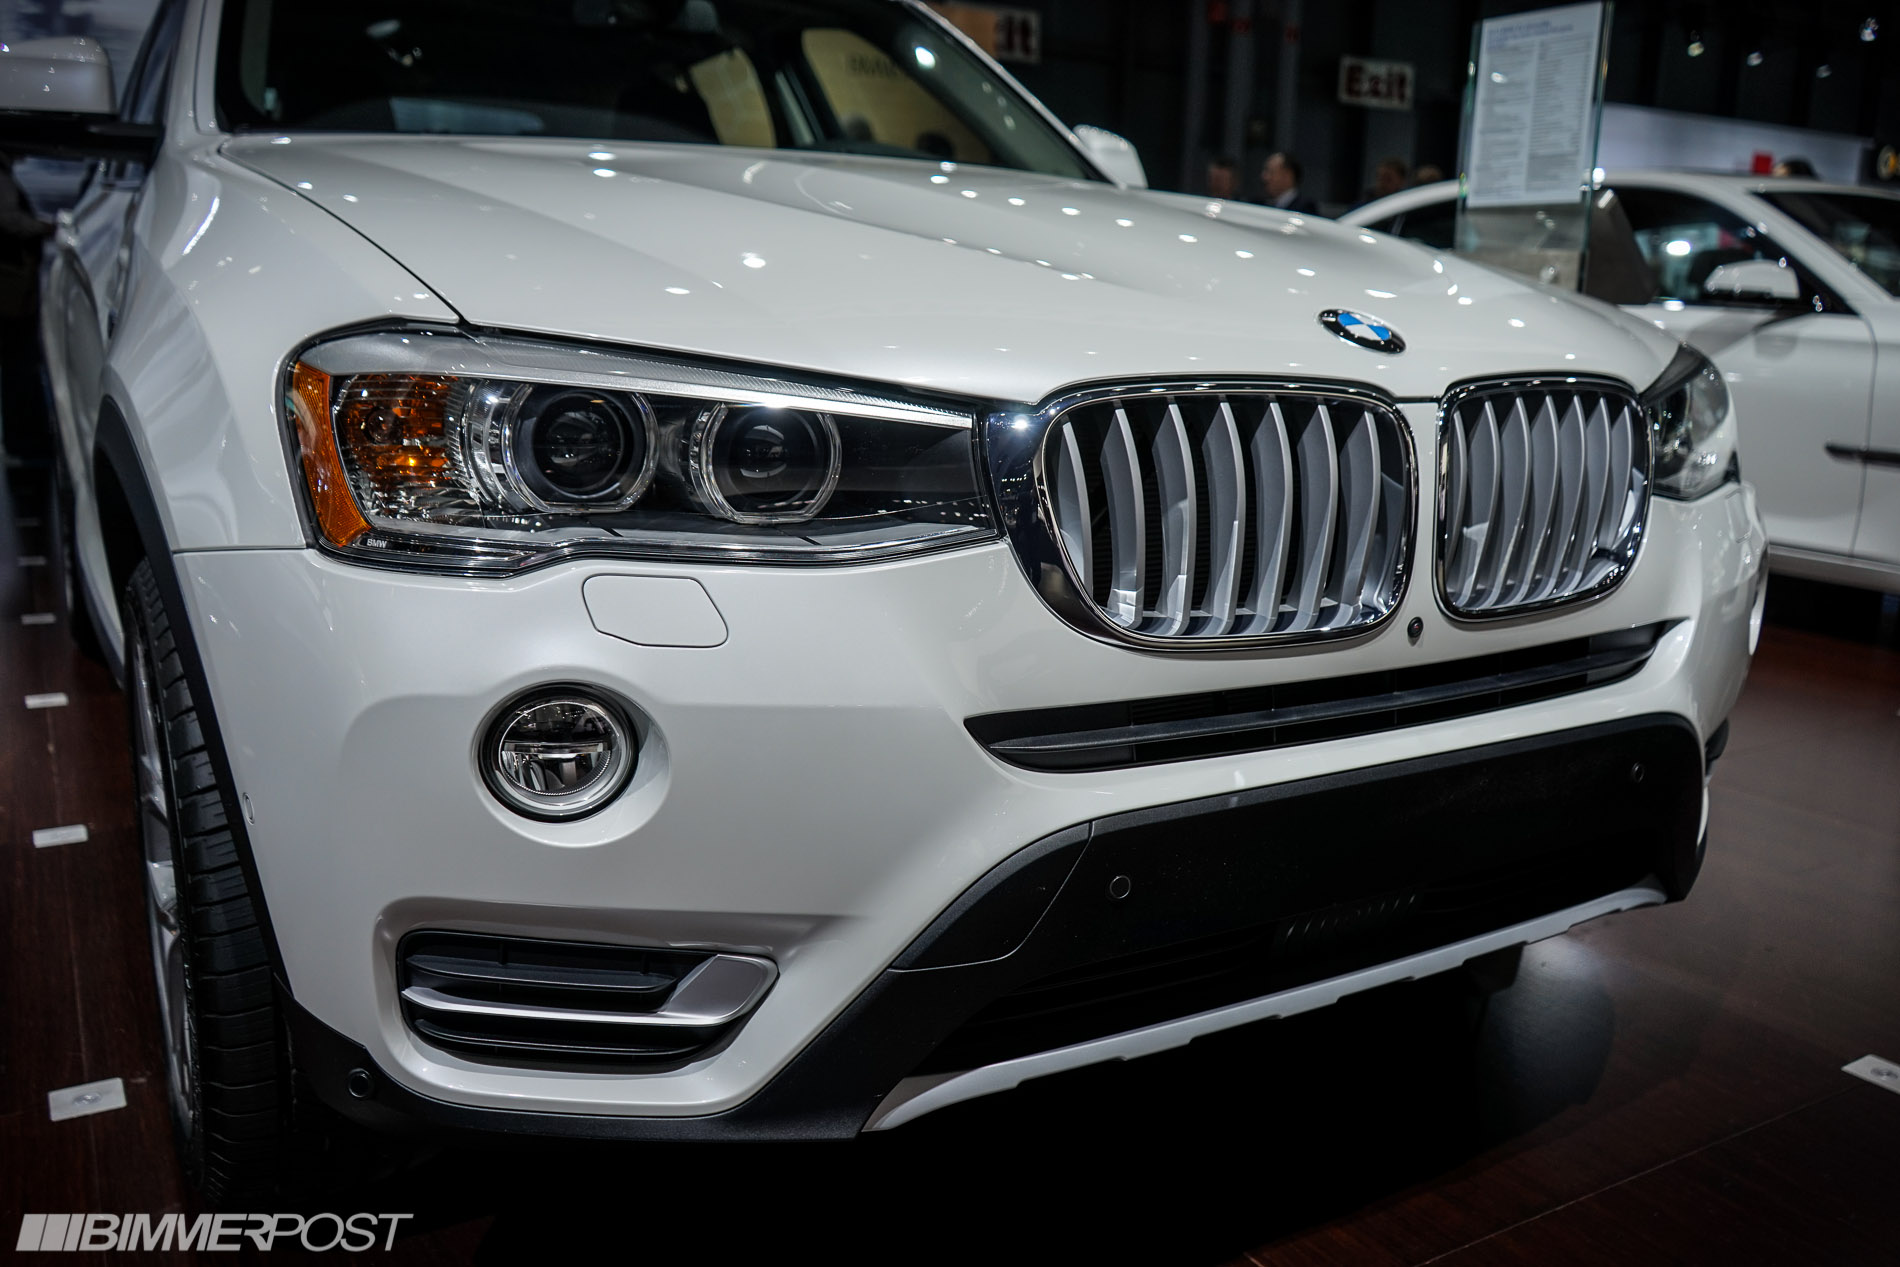 2014 nyias bmw x3 lci facelift. Black Bedroom Furniture Sets. Home Design Ideas